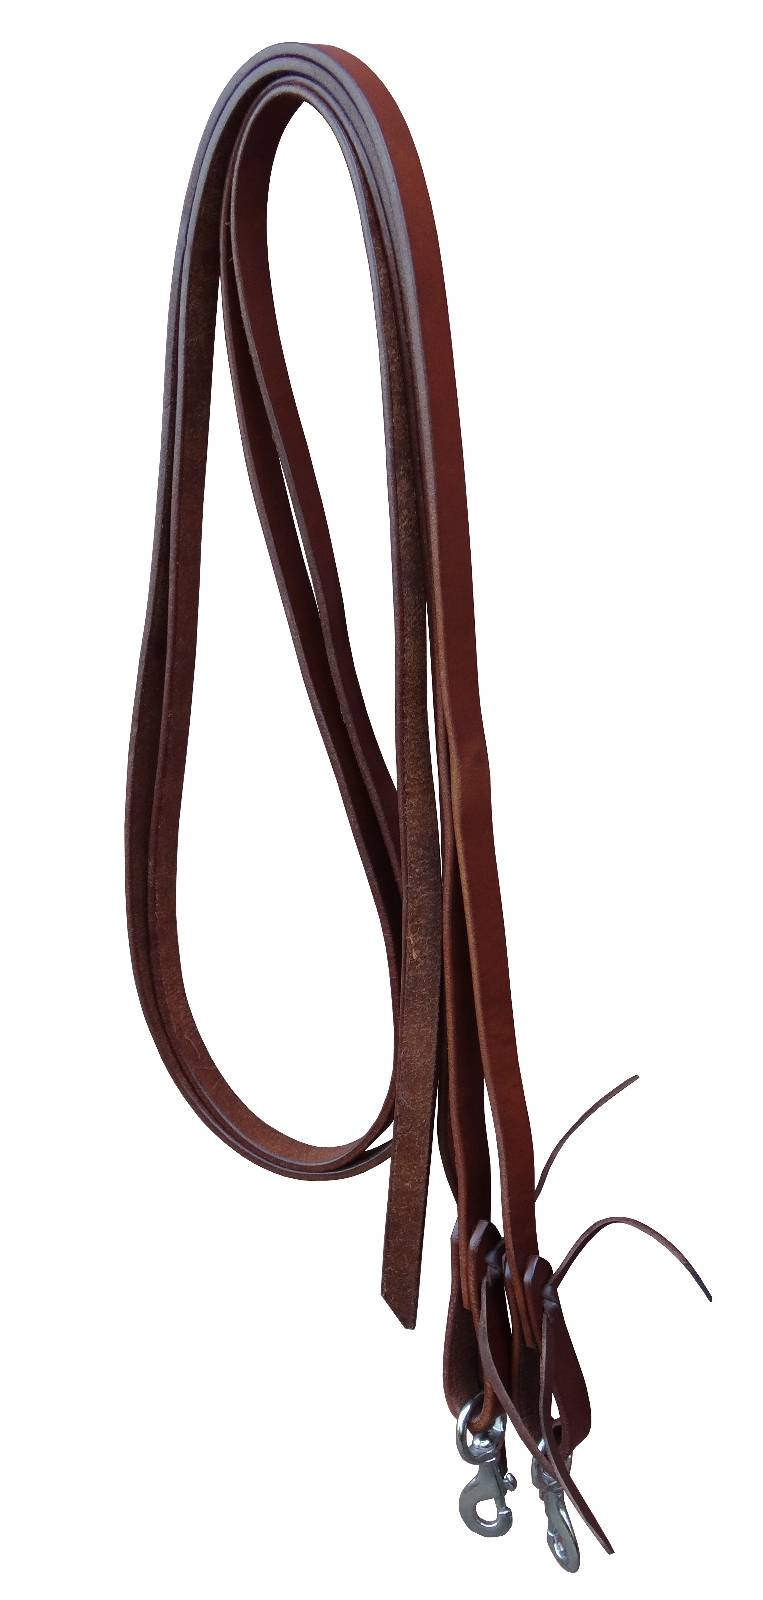 Turn-Two Equine Harness Split Reins Snap End